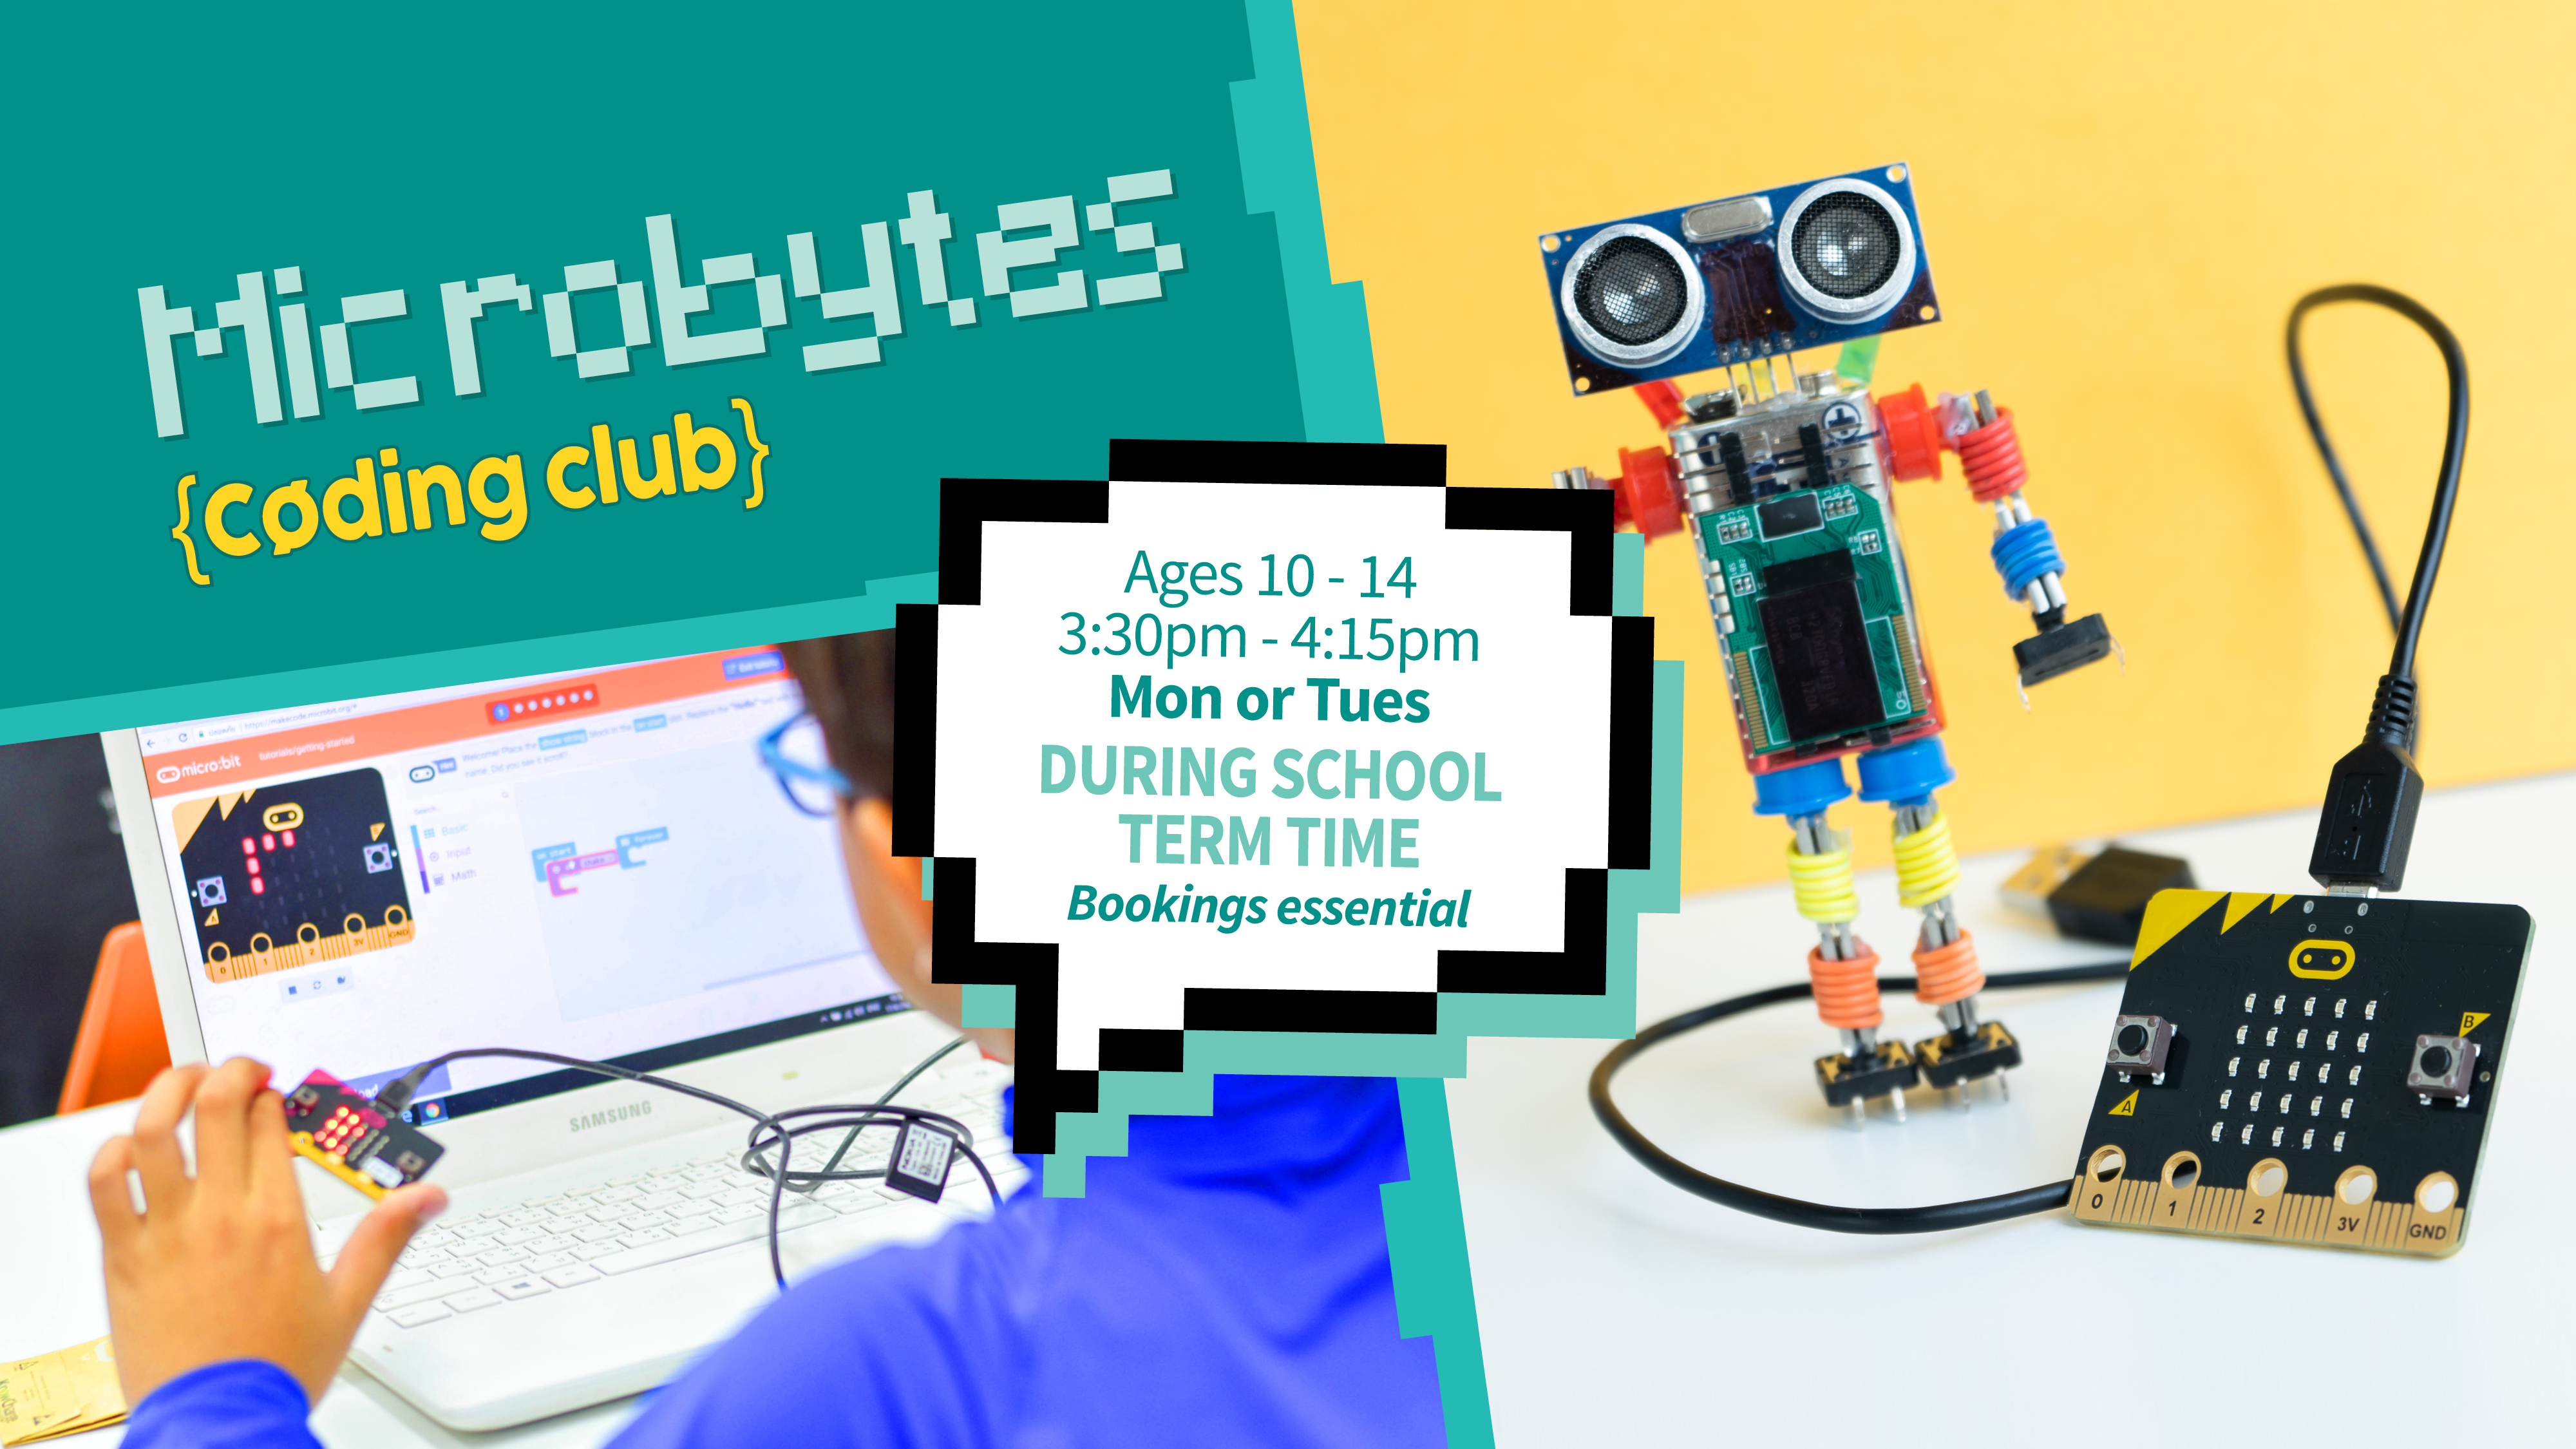 Microbytes coding club from 3:30pm Mondays and Tuesdays during school term time